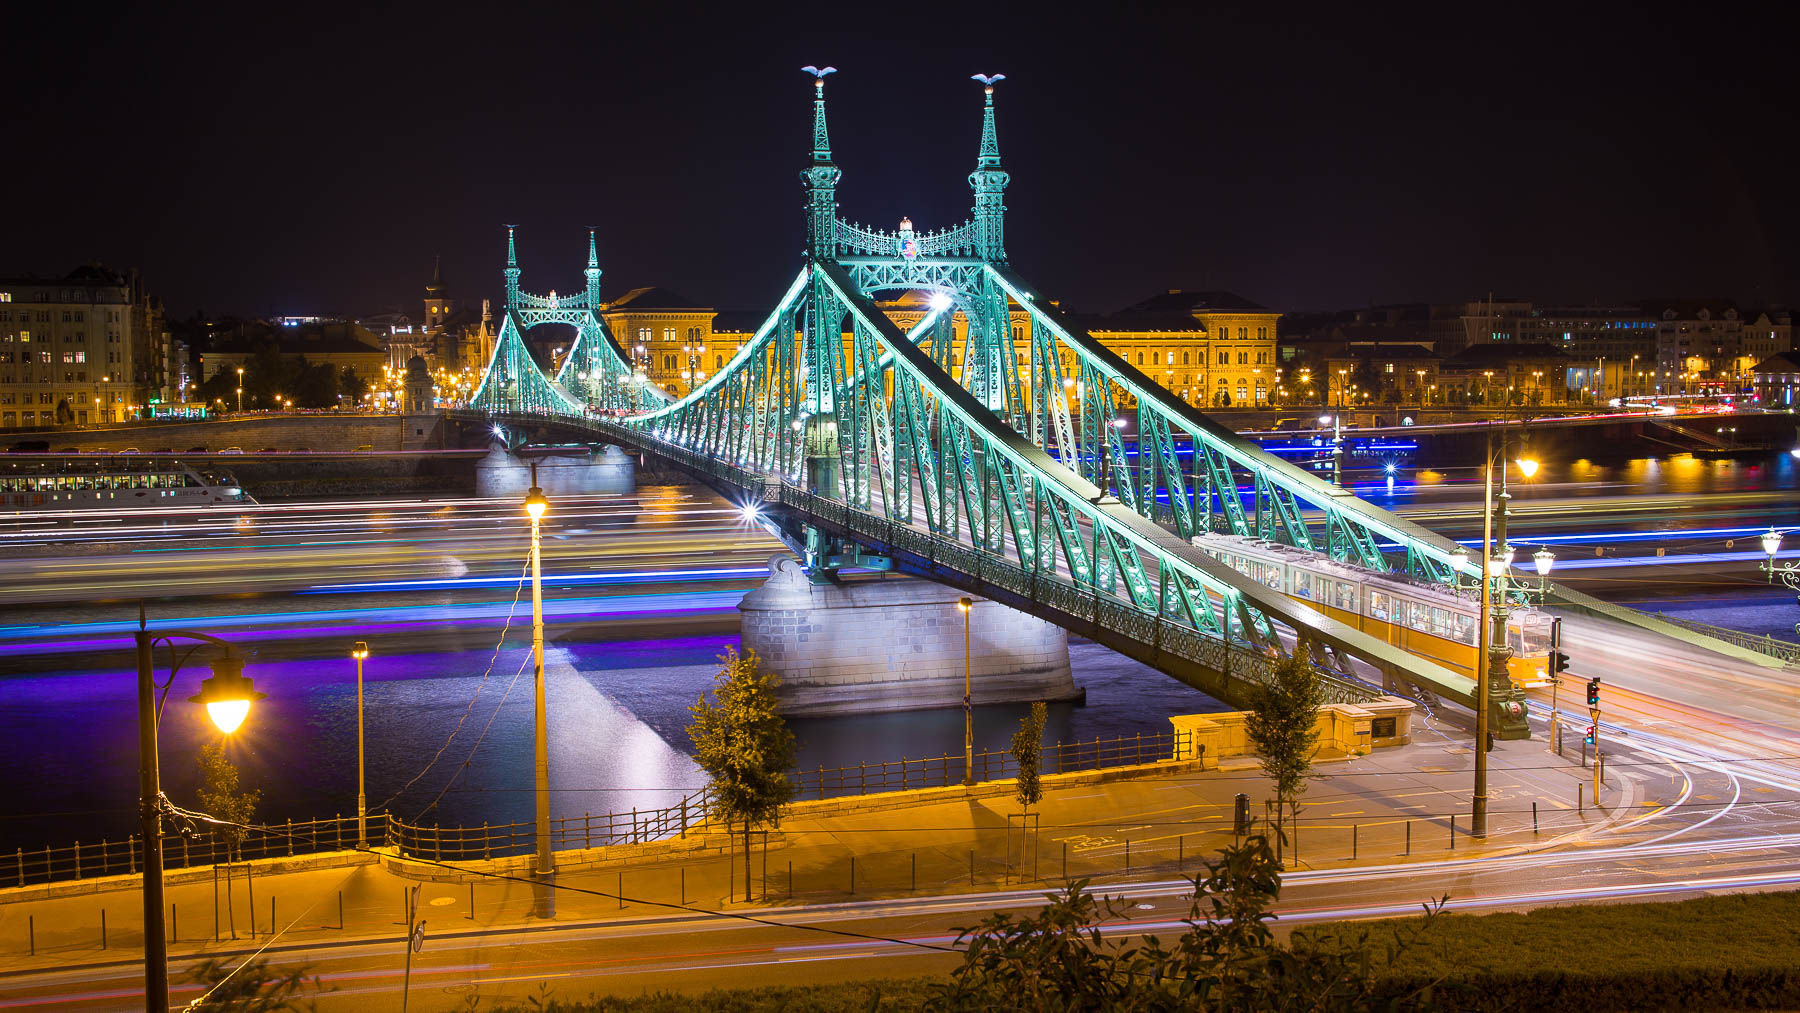 Budapest Liberty bridge at night